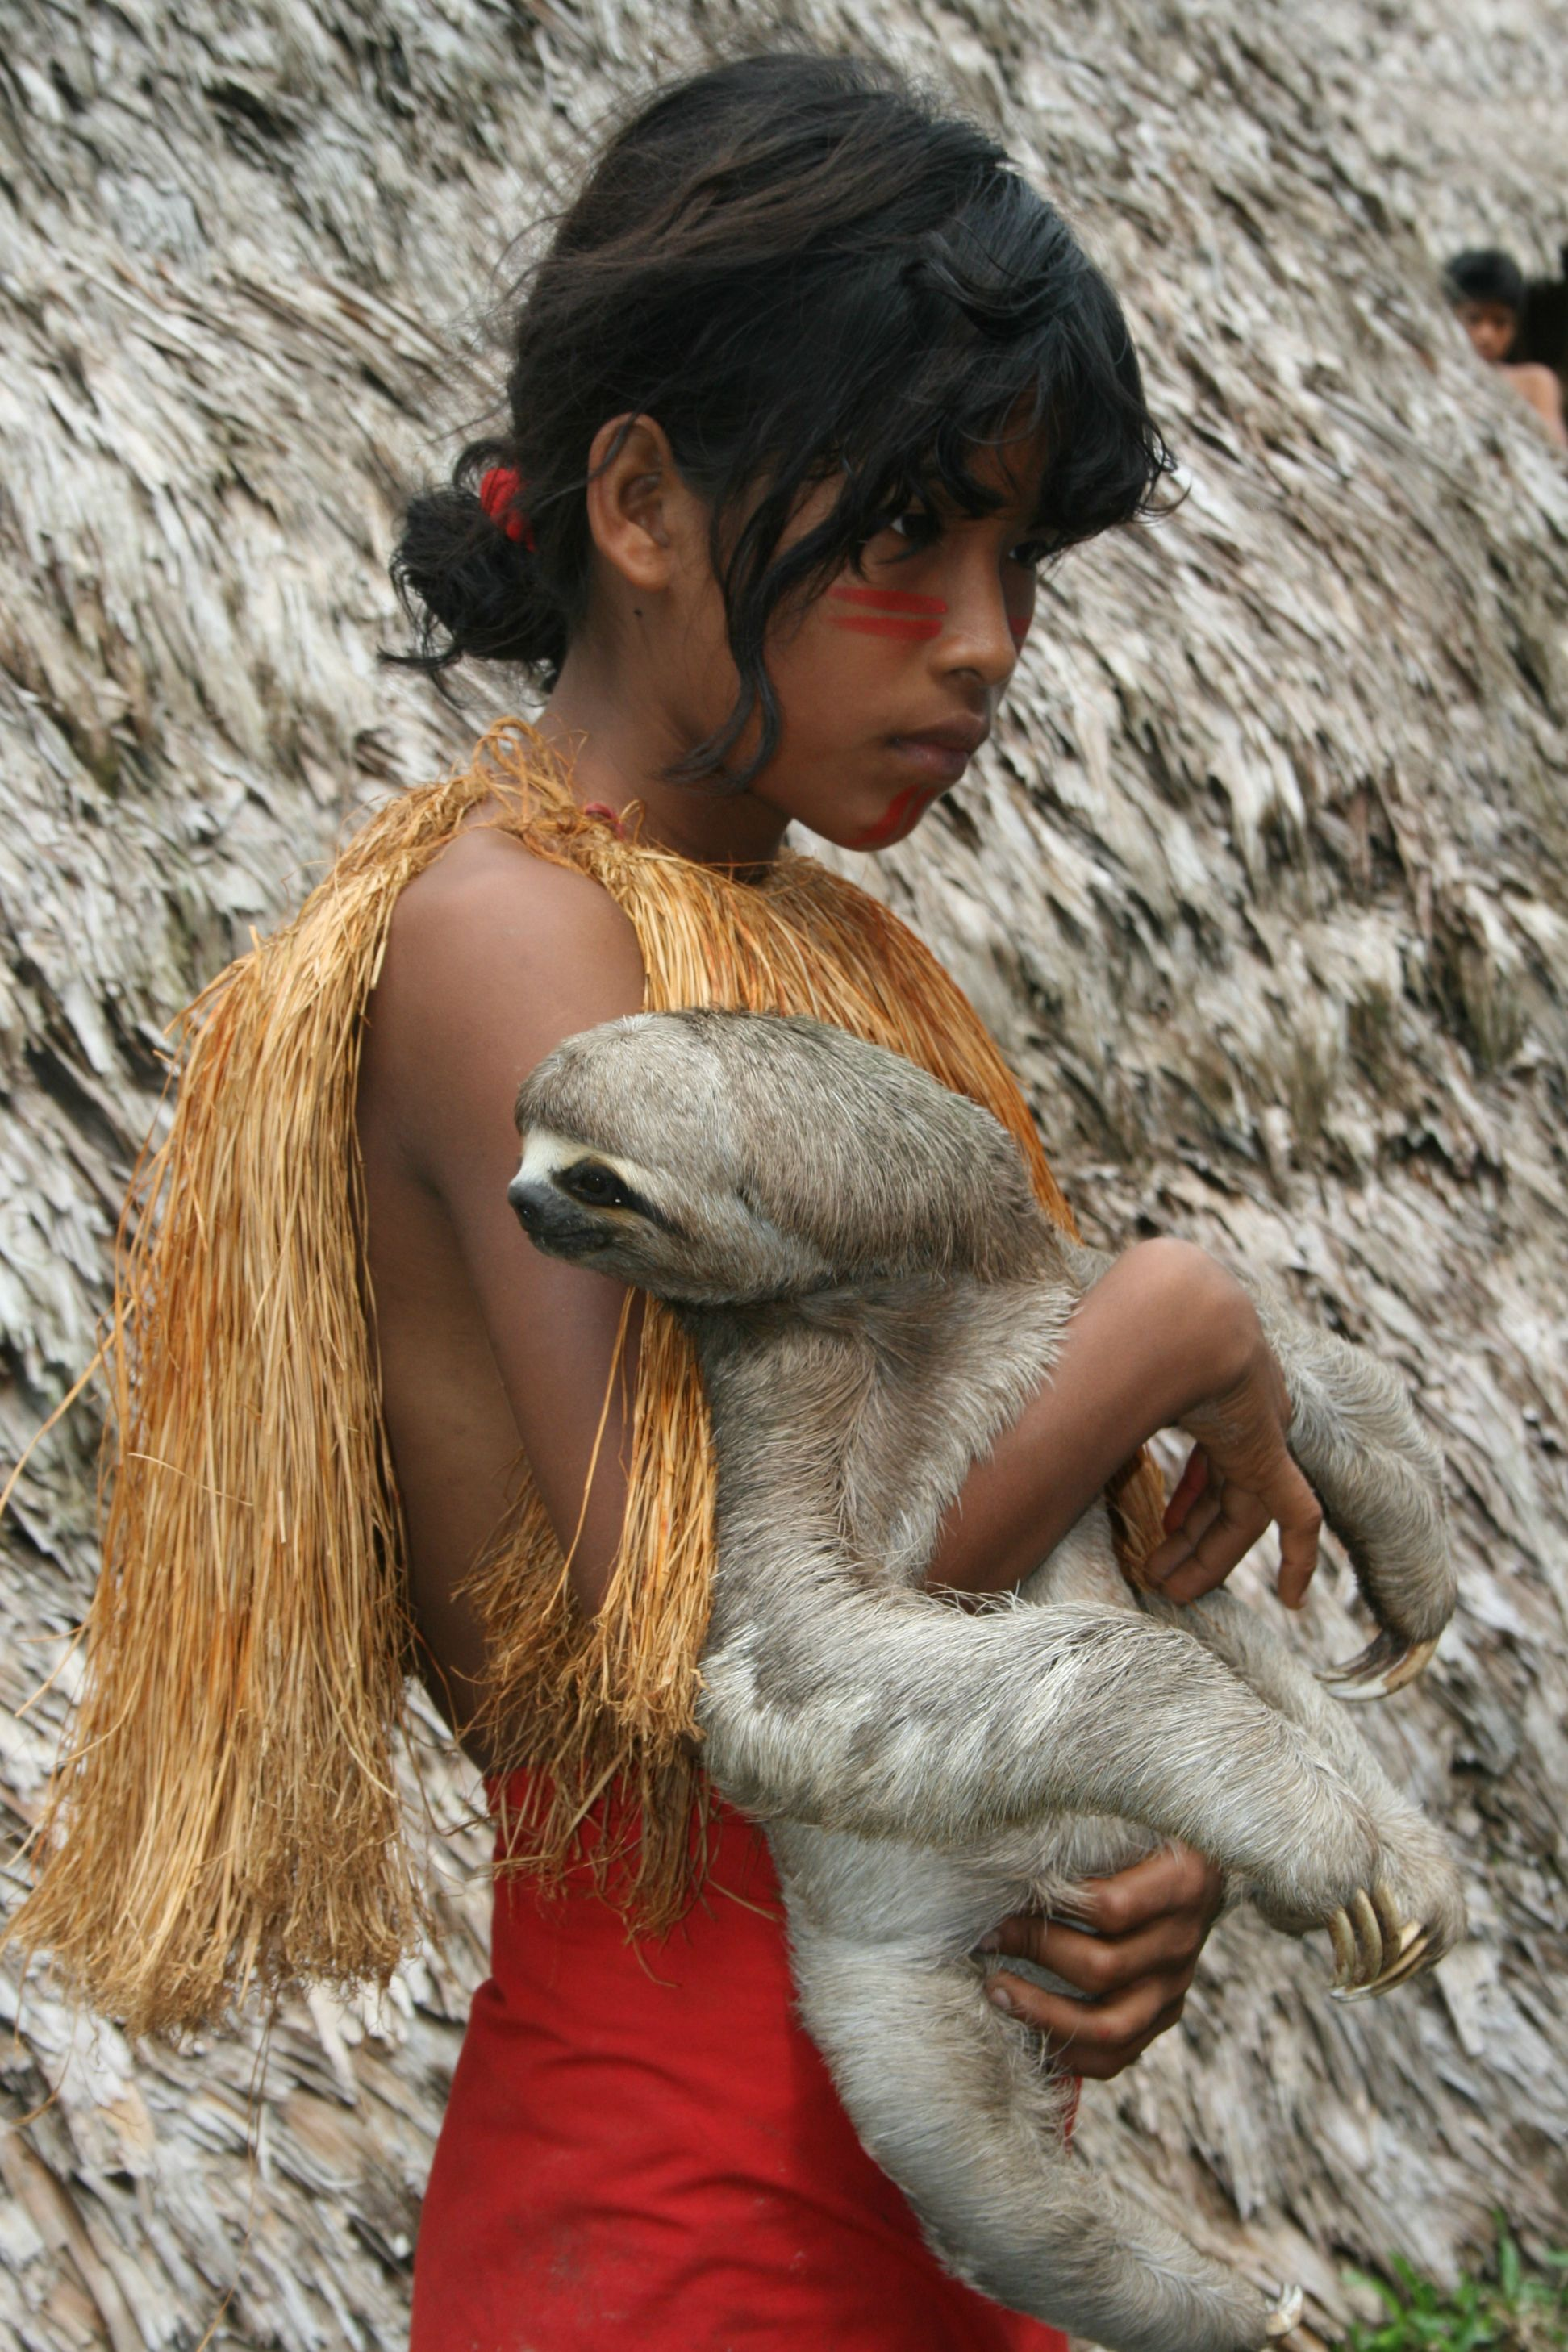 An Amazonian girl and her pet sloth